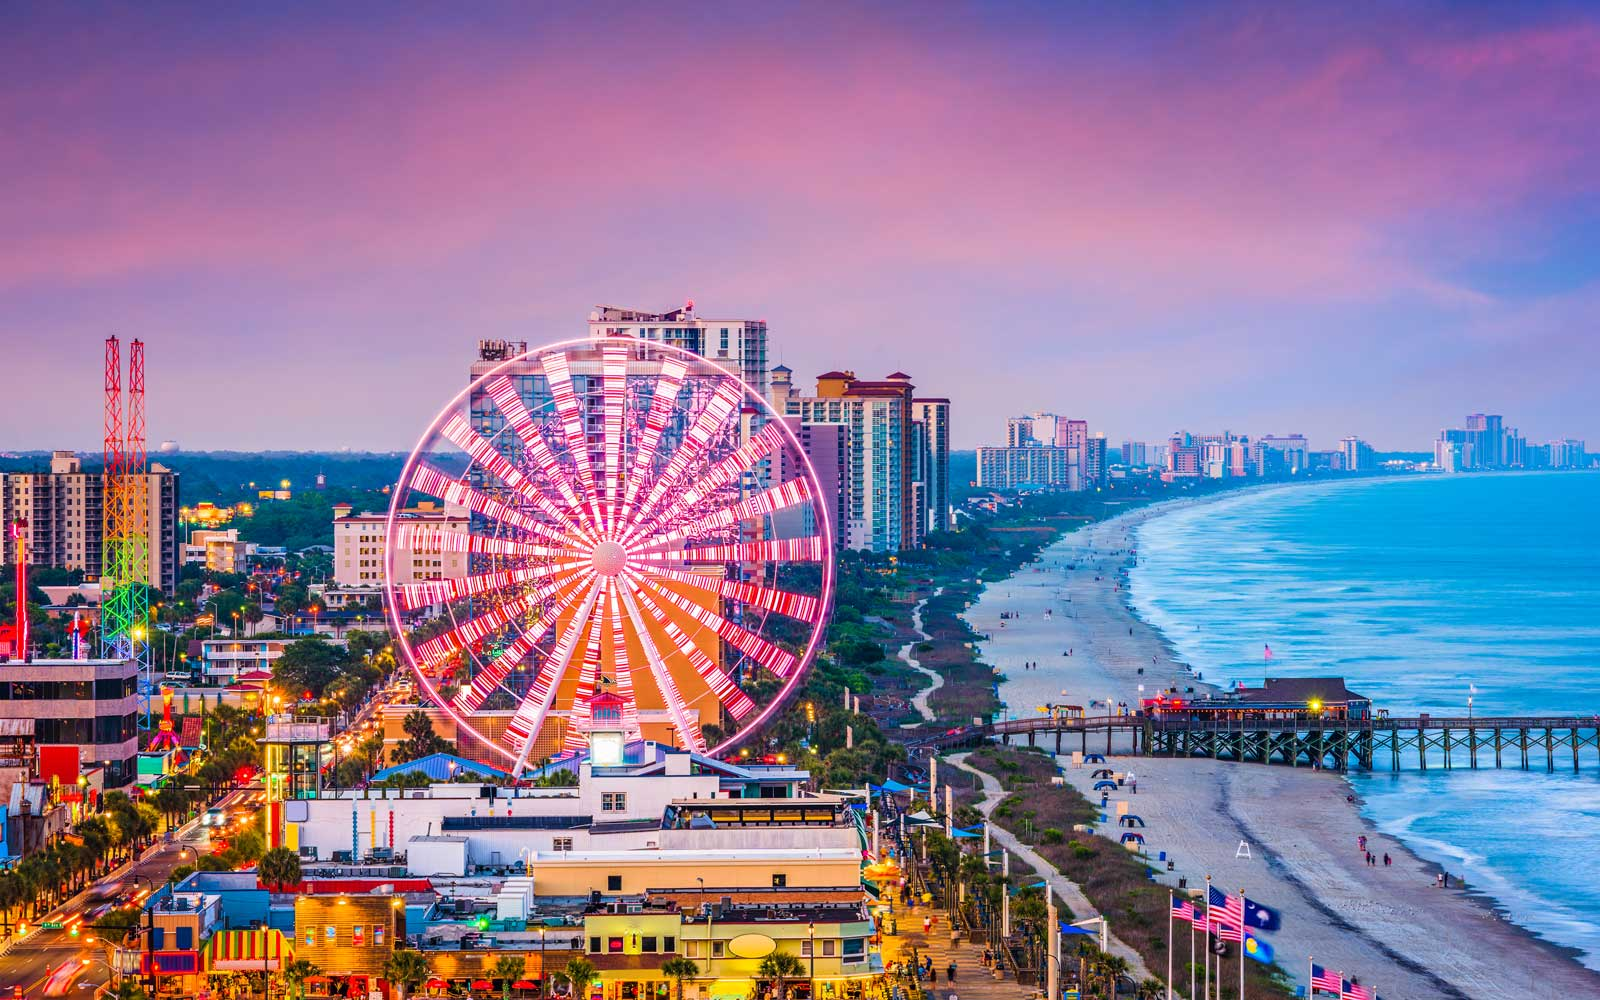 Head to destinations like Myrtle Beach for an affordable spring break getaway in 2019.